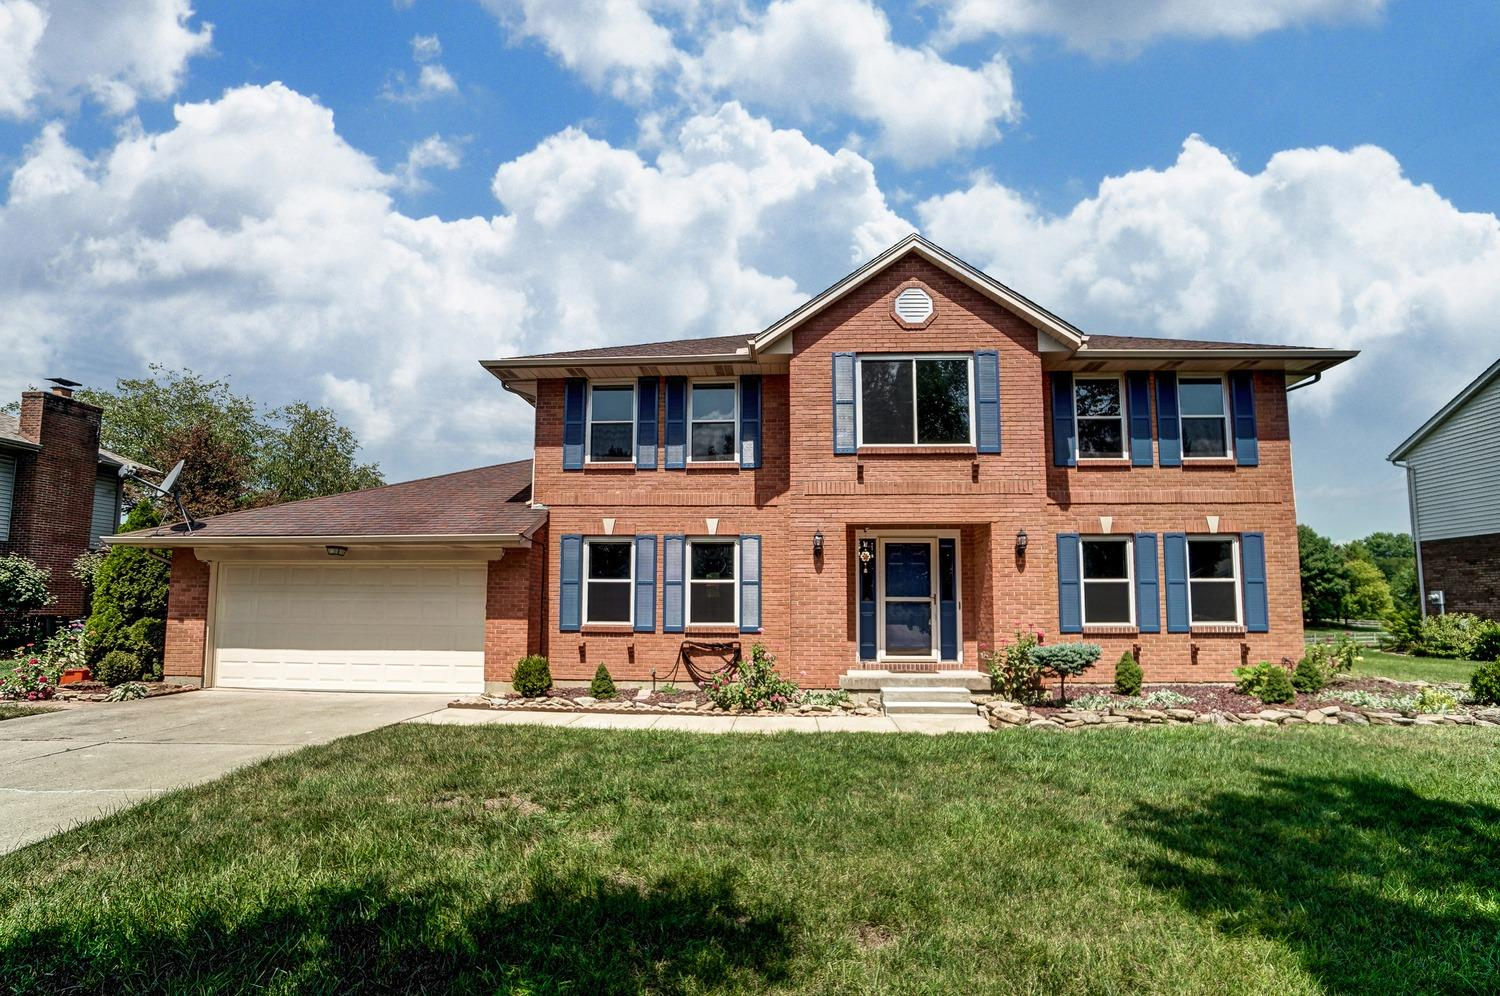 Property for sale at 8336 Charming Manor, West Chester,  Ohio 45069